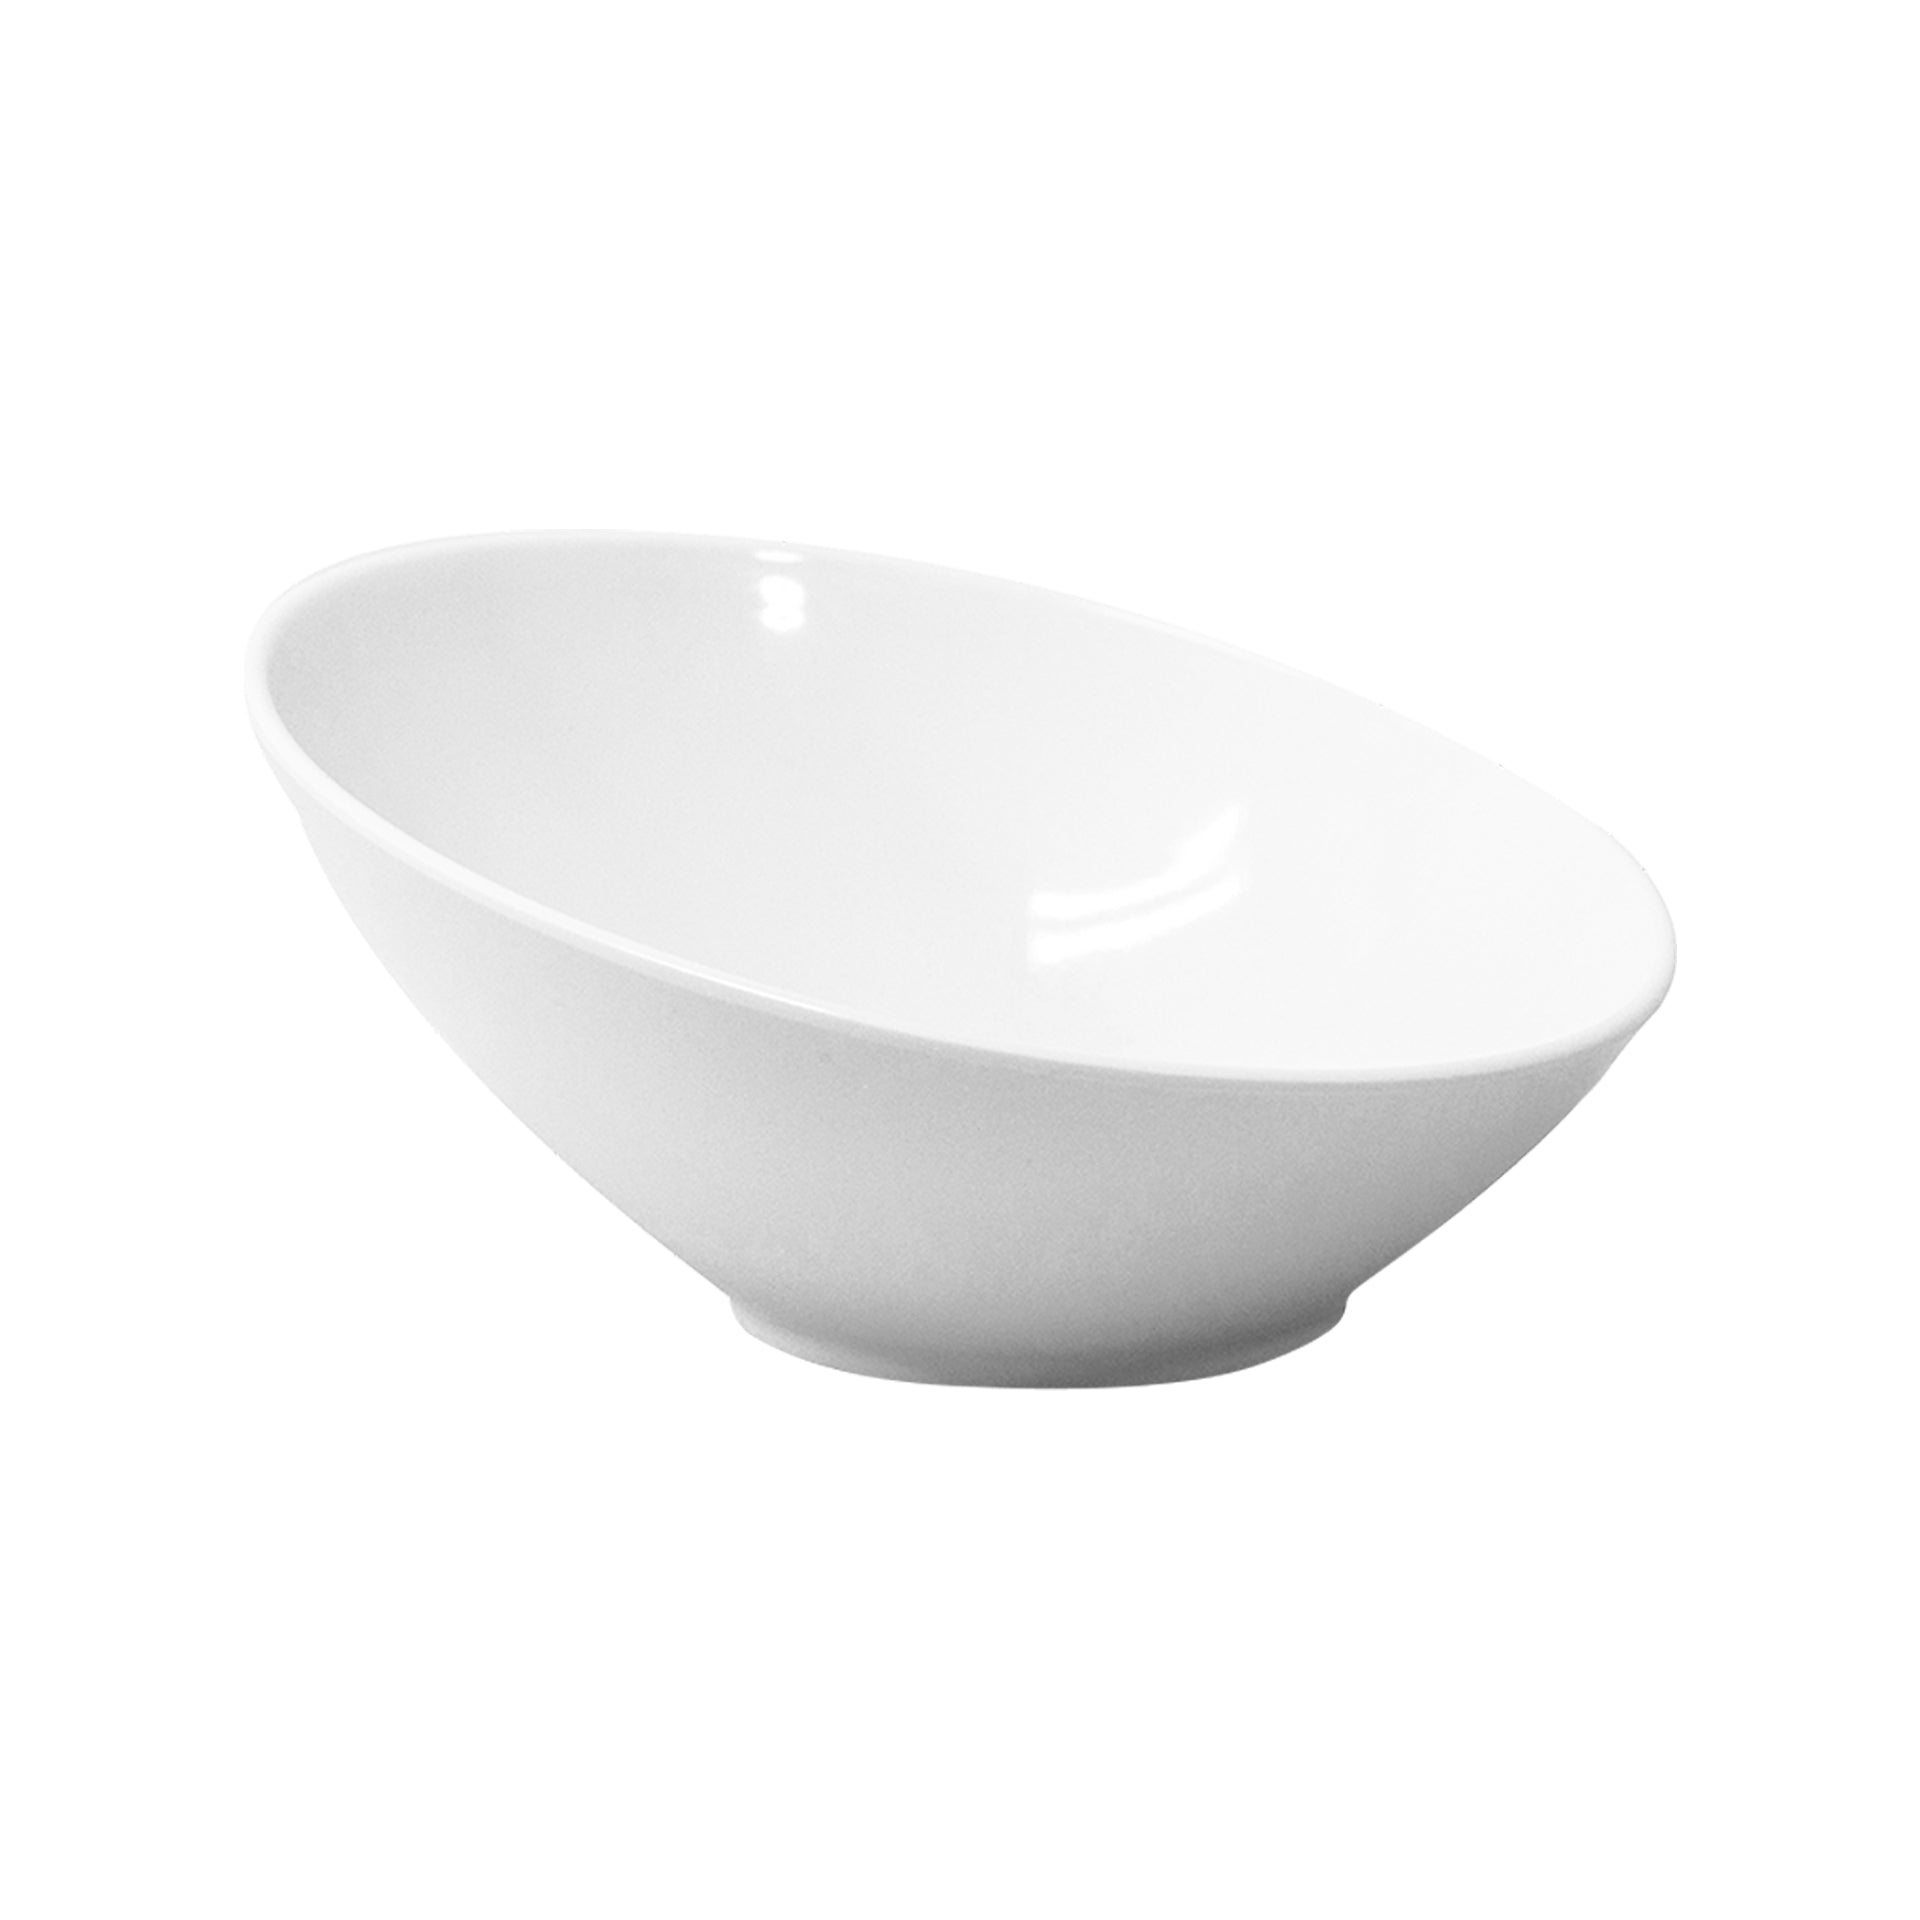 Bowl Inclinado 25 cm|Melamina Blanca